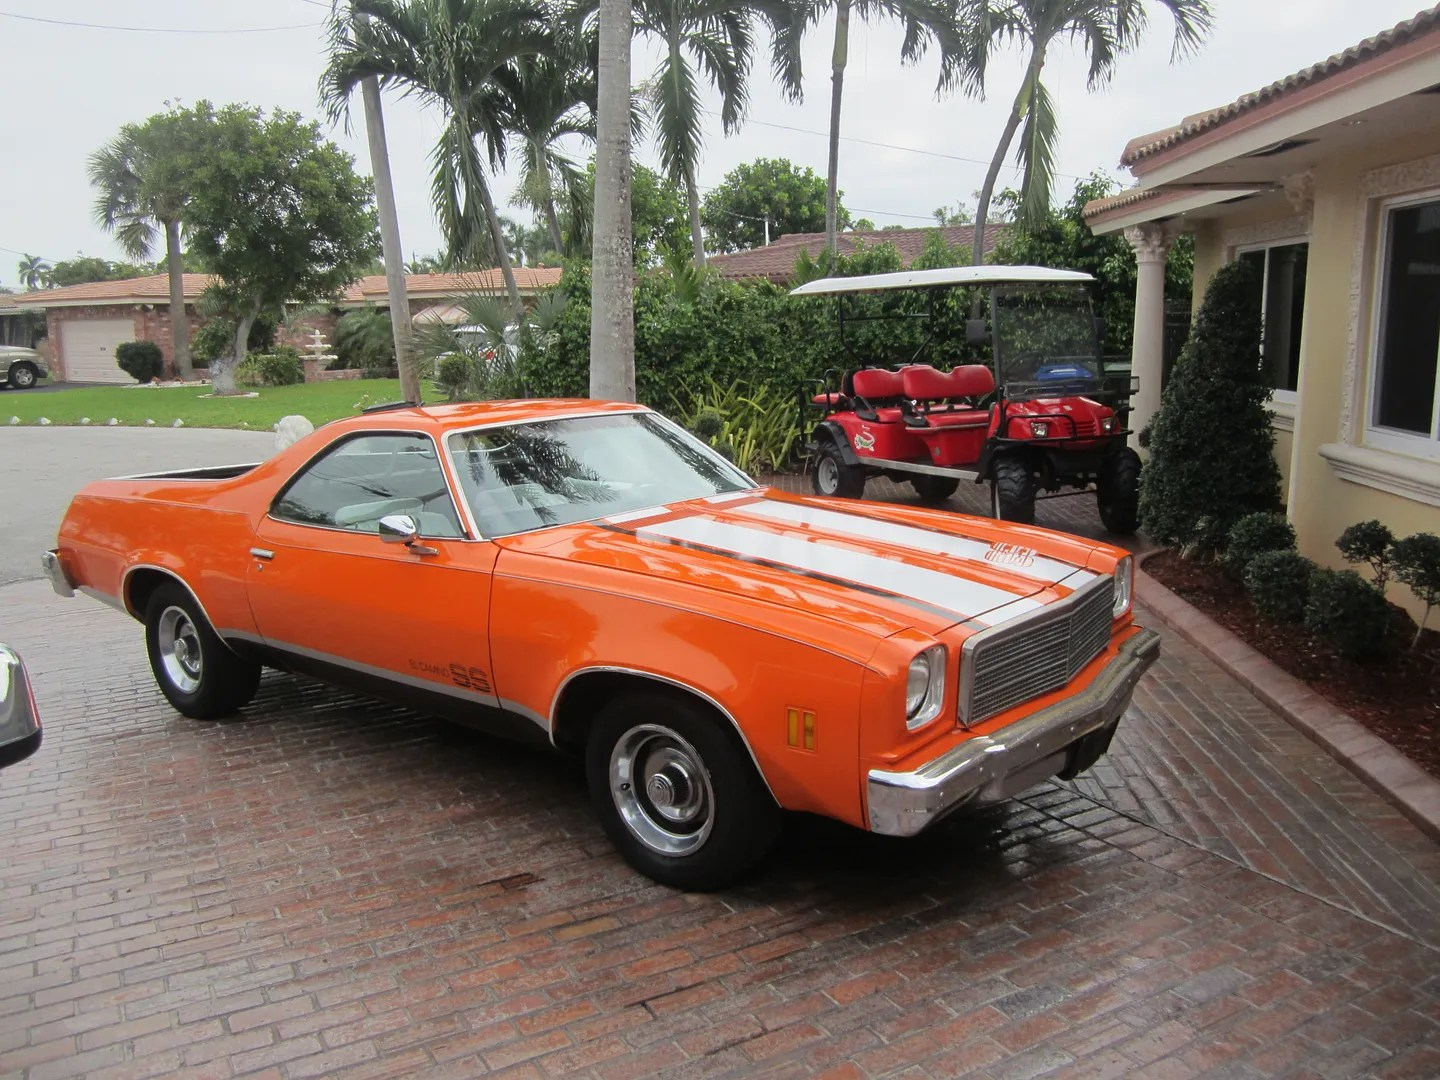 hight resolution of 1974 chevrolet el camino v8 350 a c new paint and interior muscle car no reserve on 2040 cars